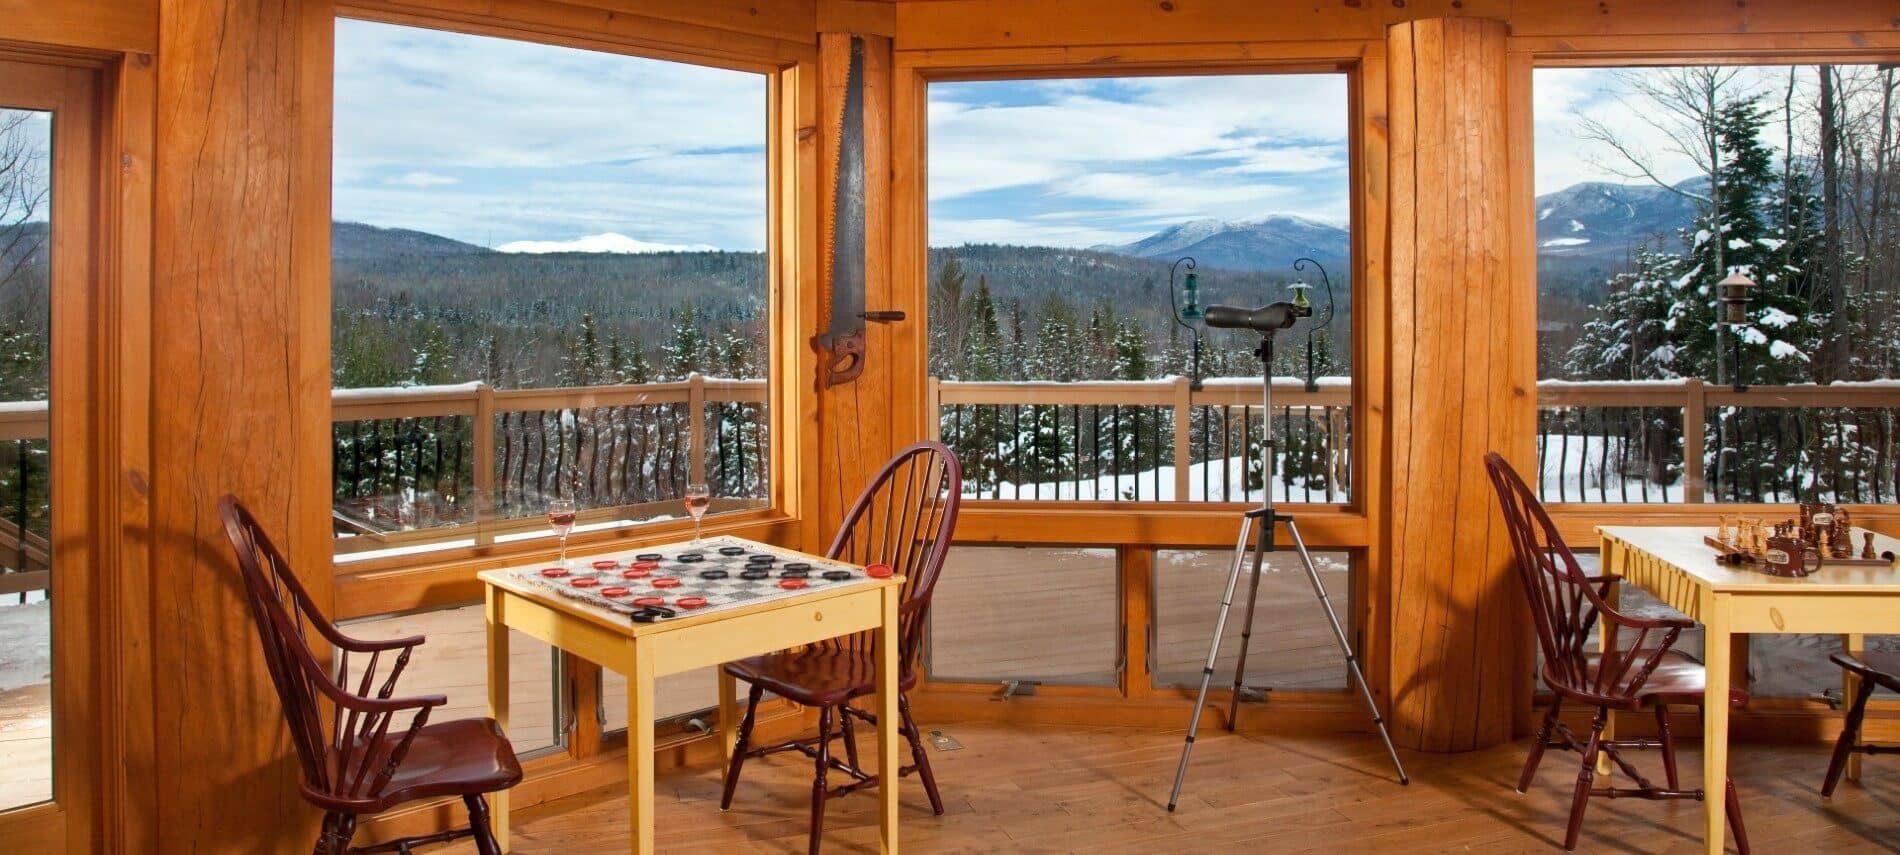 Corner of a log cabin home with two game tables and chairs in front of large picture windows overlooking mountains